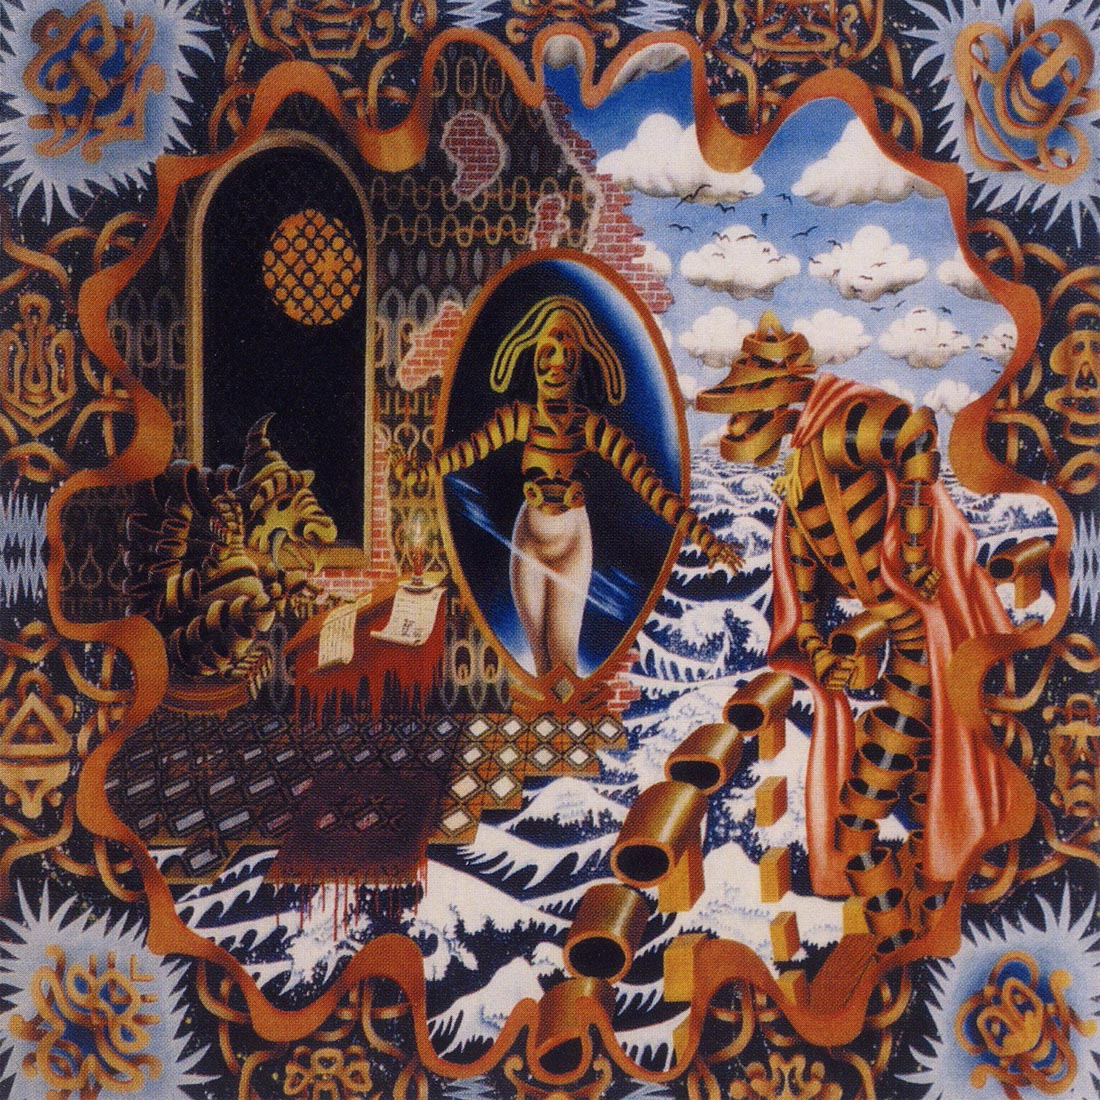 Datura - [1999] - Visions For The Celestial